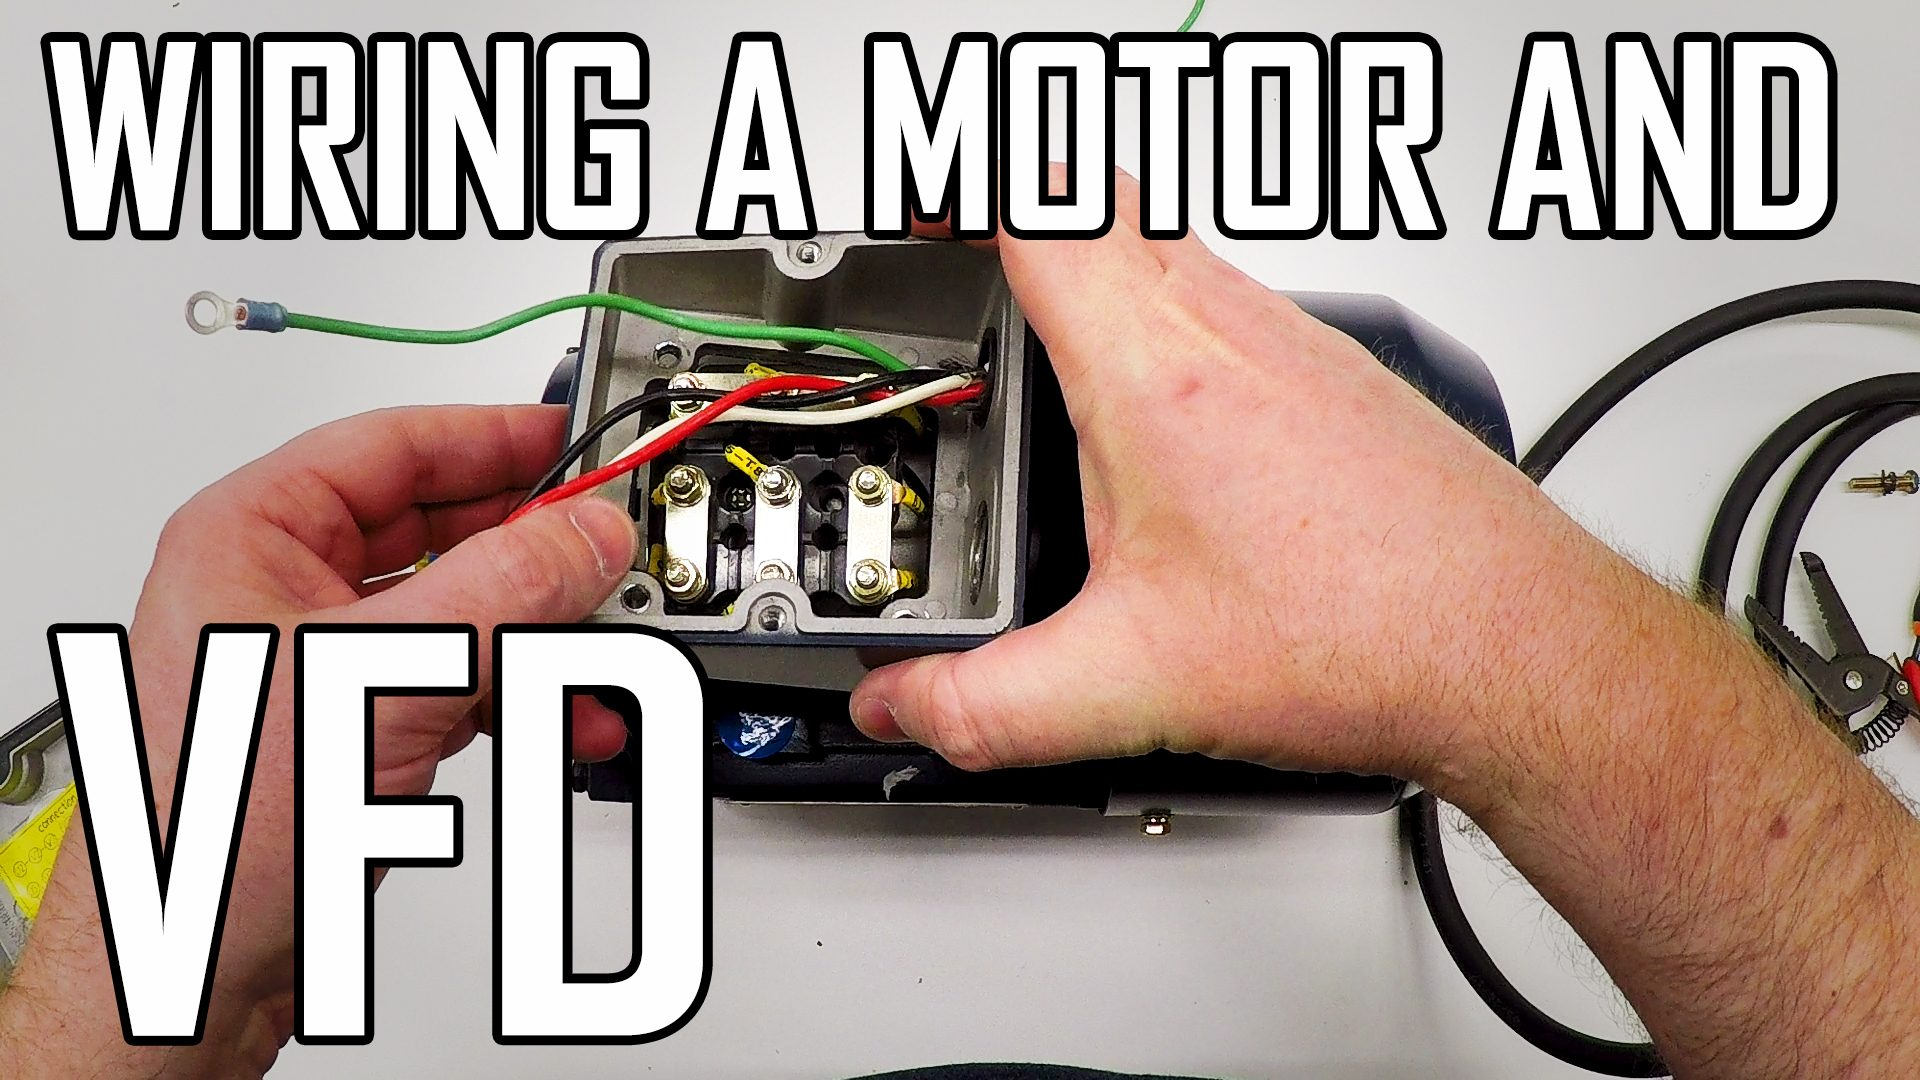 Wiring a Motor and VFD for a Grizzly G0602 Lathe